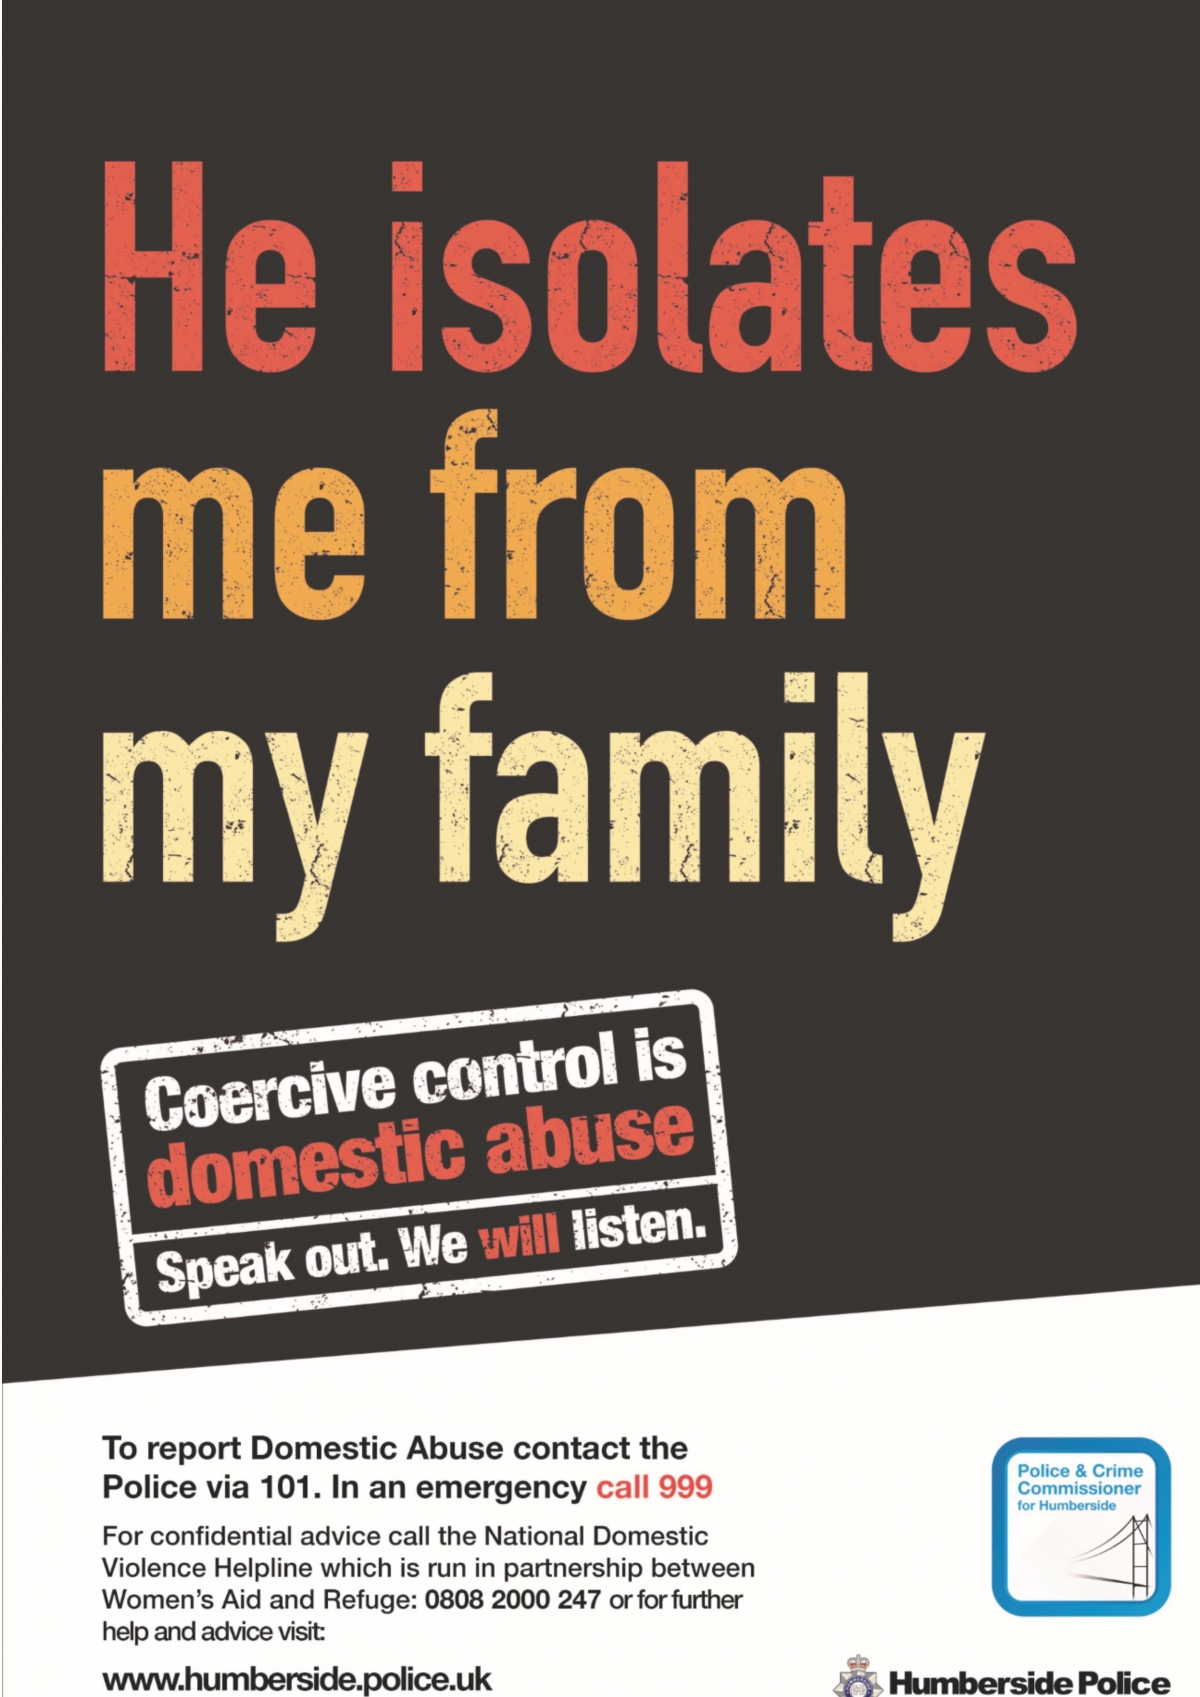 Coercive Control - Life can be better than this. Domestic Abuse - Humberside Police are committed to helping the thousands of victims in our communities looking to escape an abusive relationship, but have not got the confidence or courage to escape